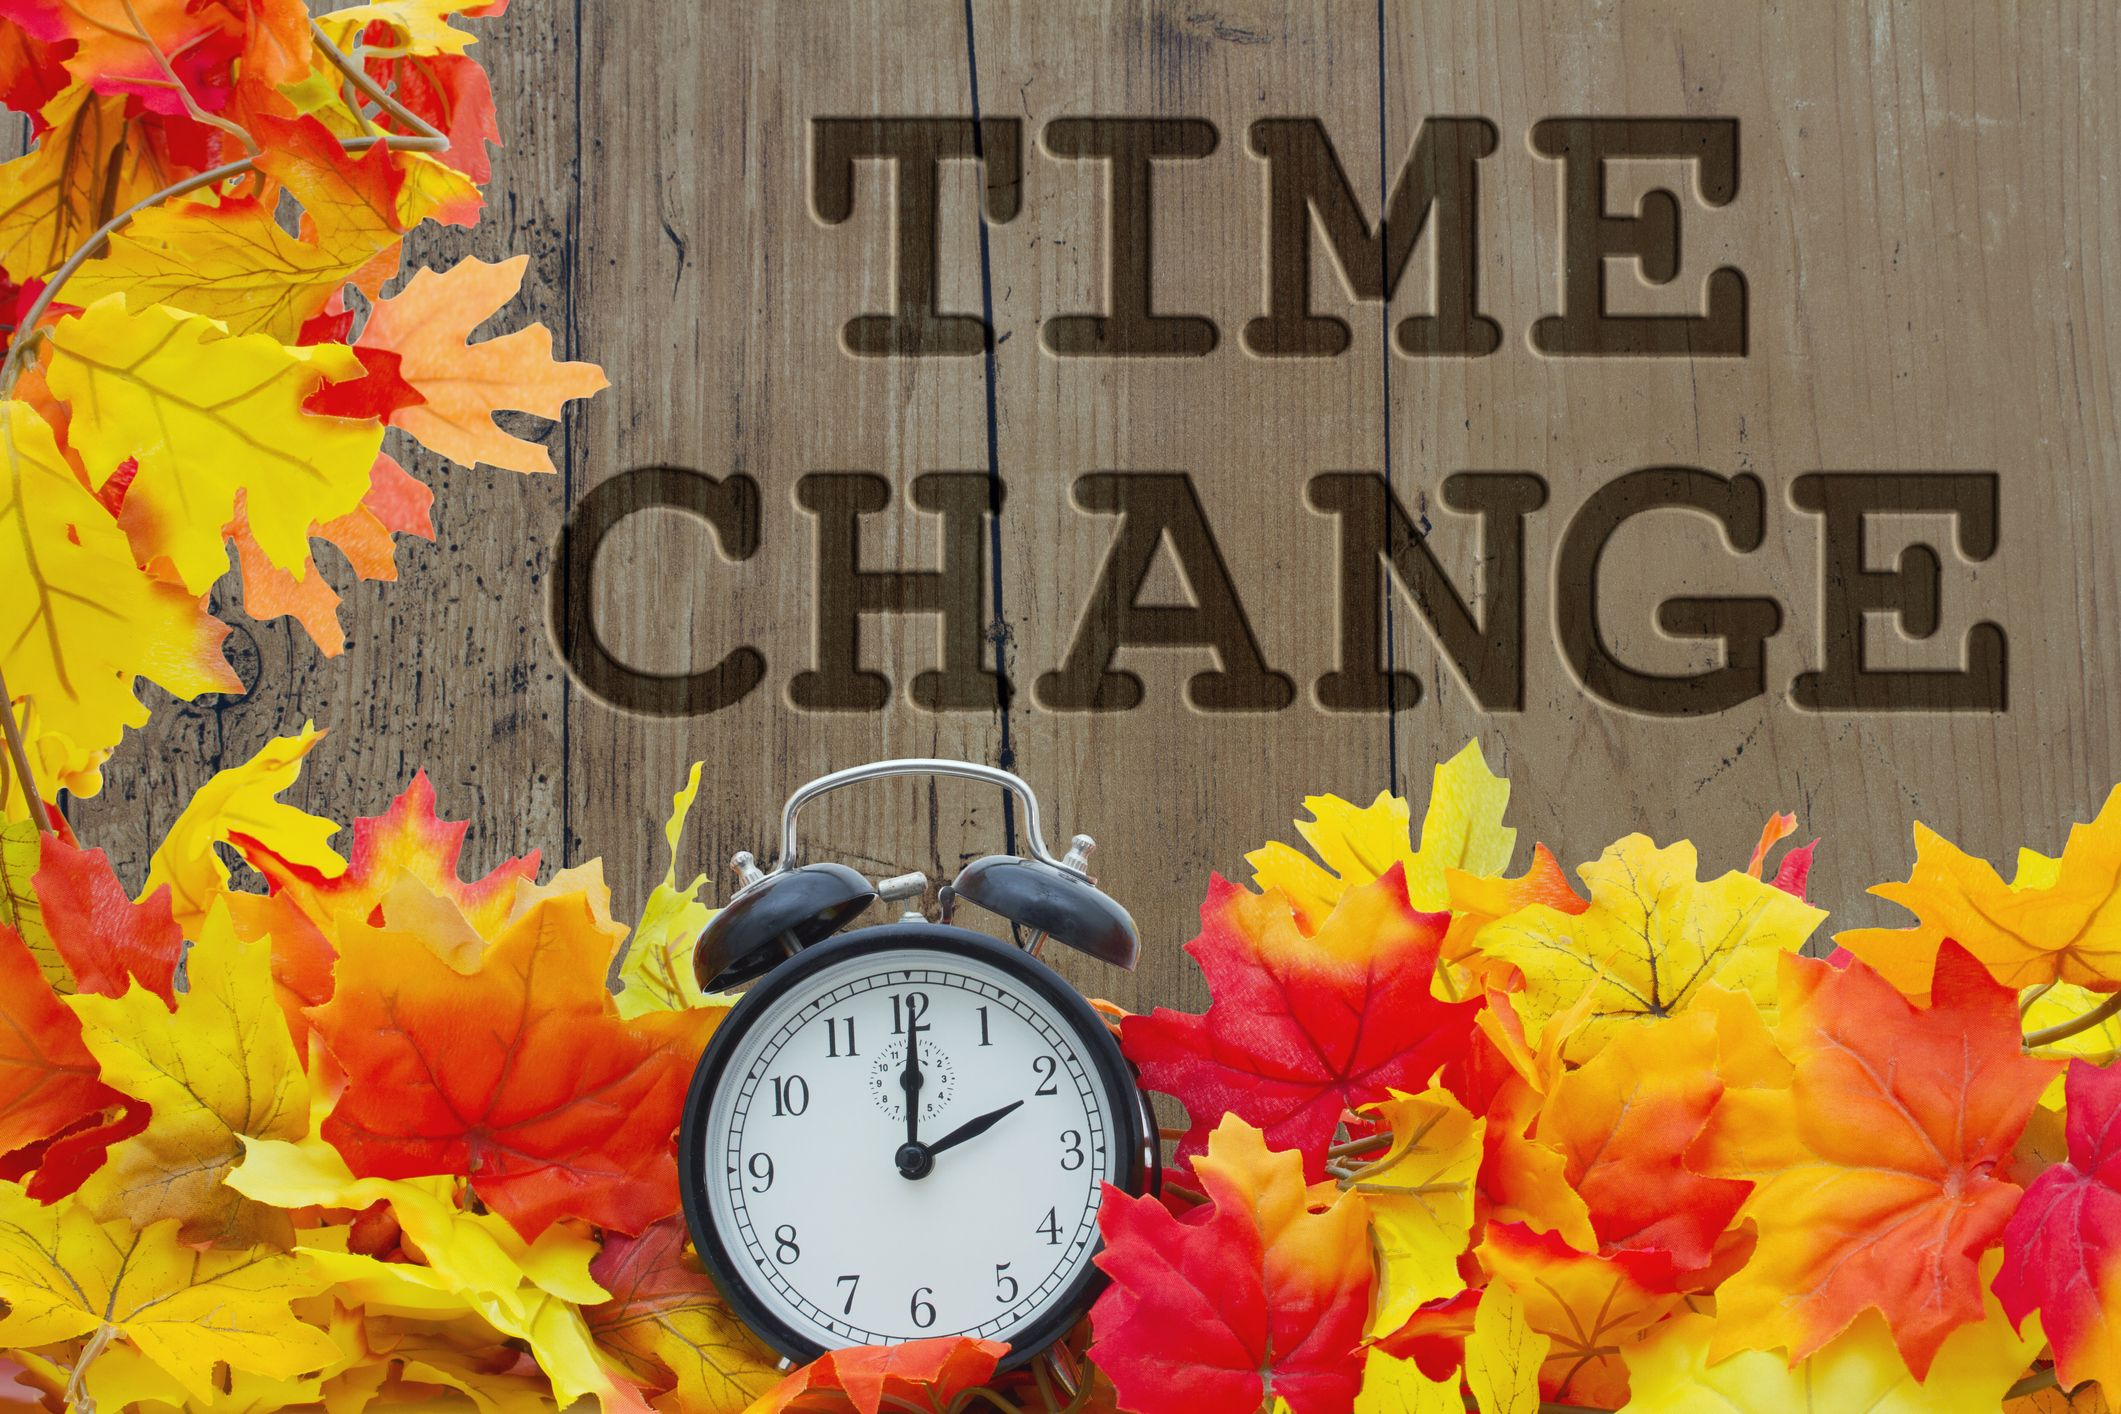 Change your clocks this weekend daylight saving time ends